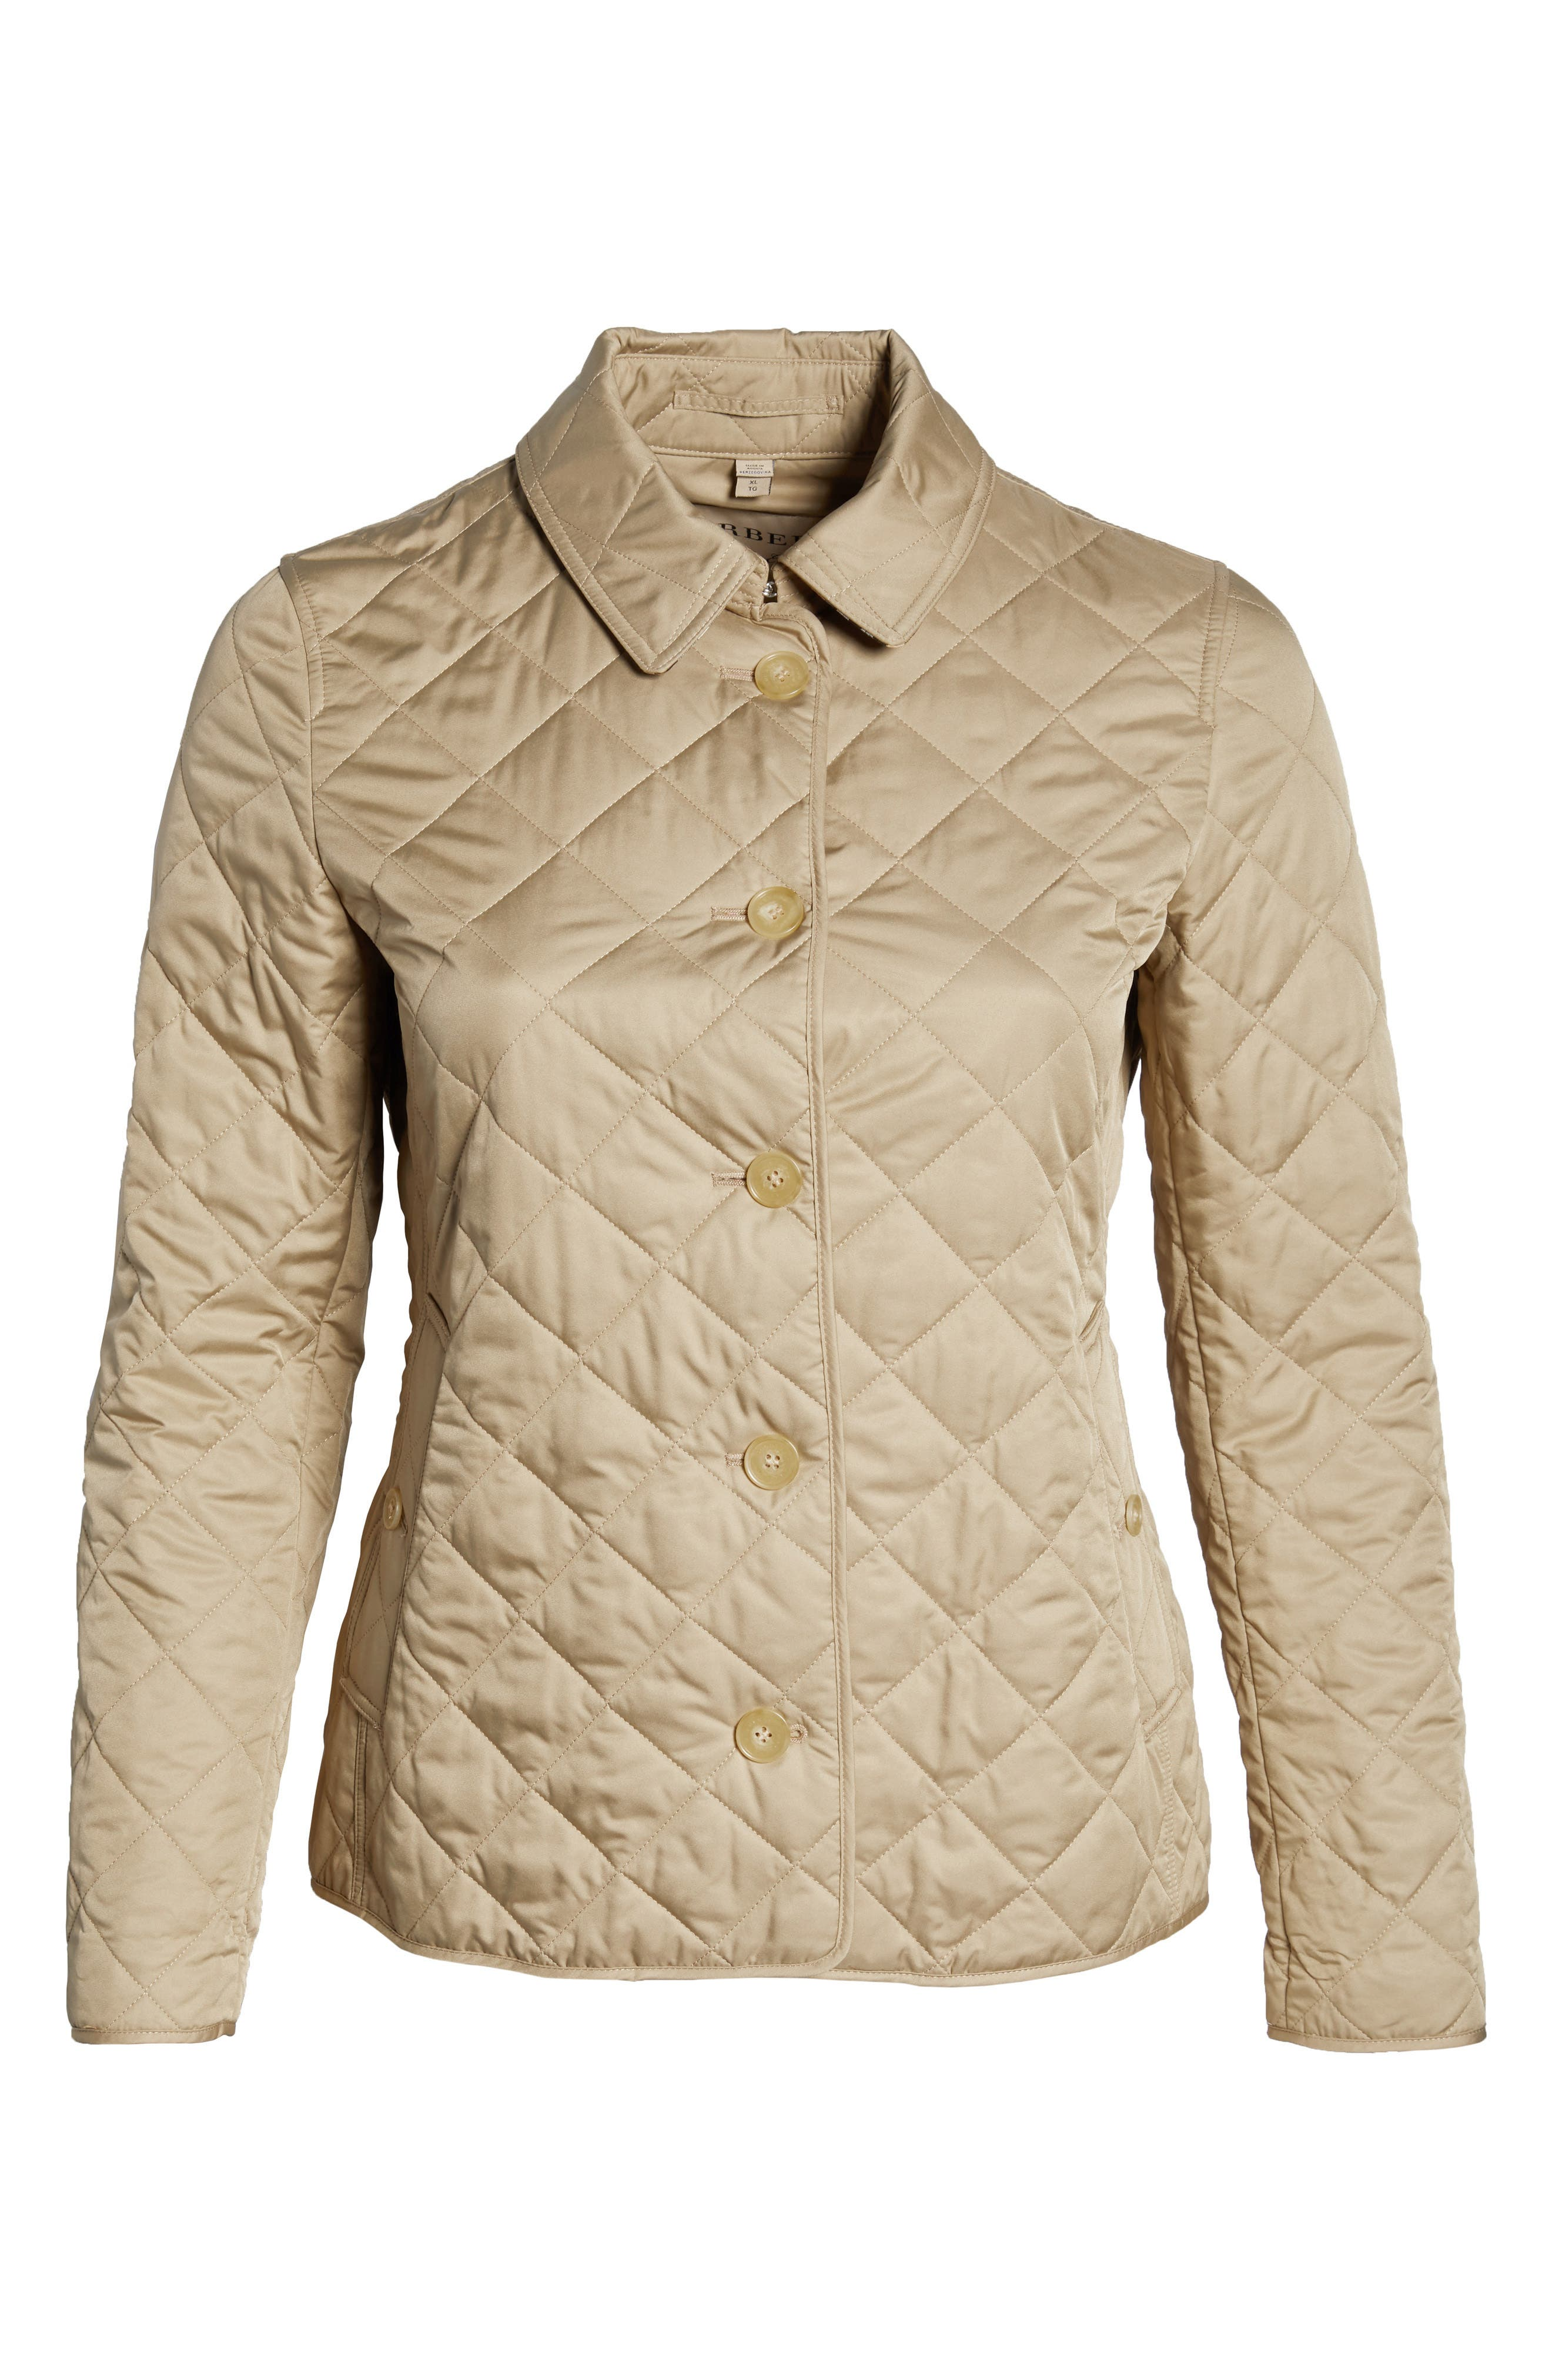 Frankby 18 Quilted Jacket,                             Alternate thumbnail 10, color,                             CANVAS